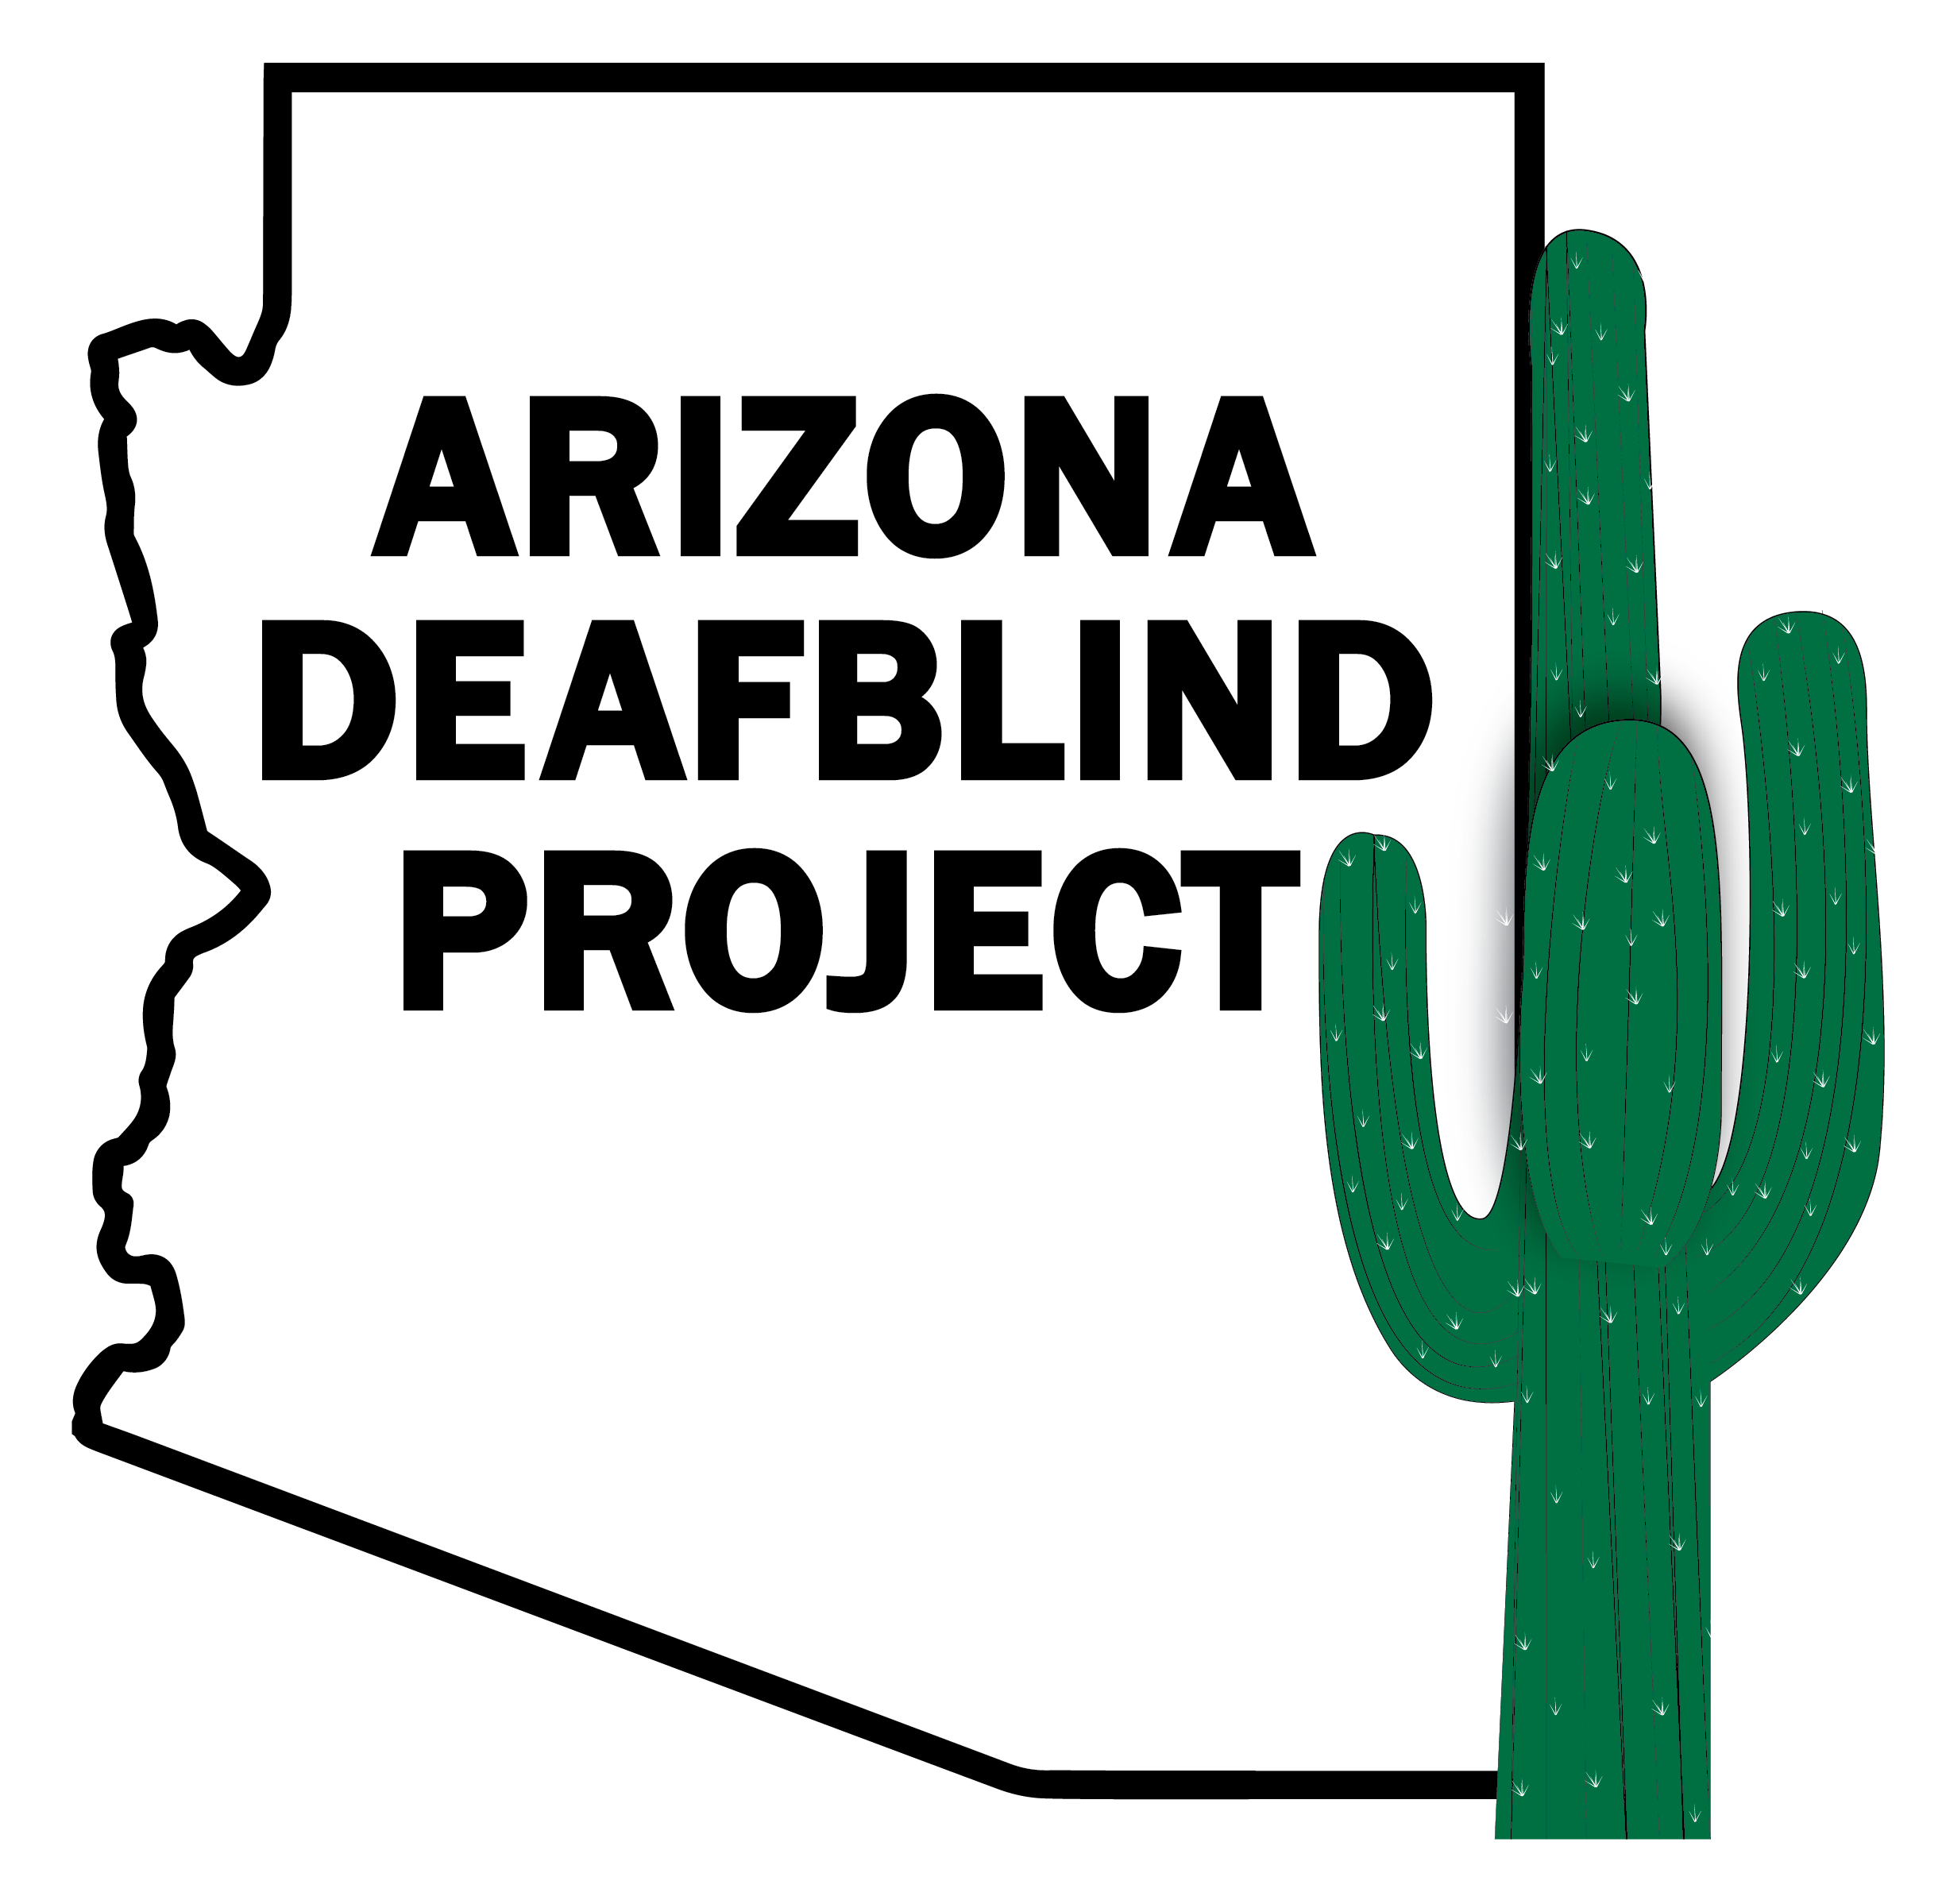 Arizona Deaf Blind Project logo represented by the AZ state outline and a cactus